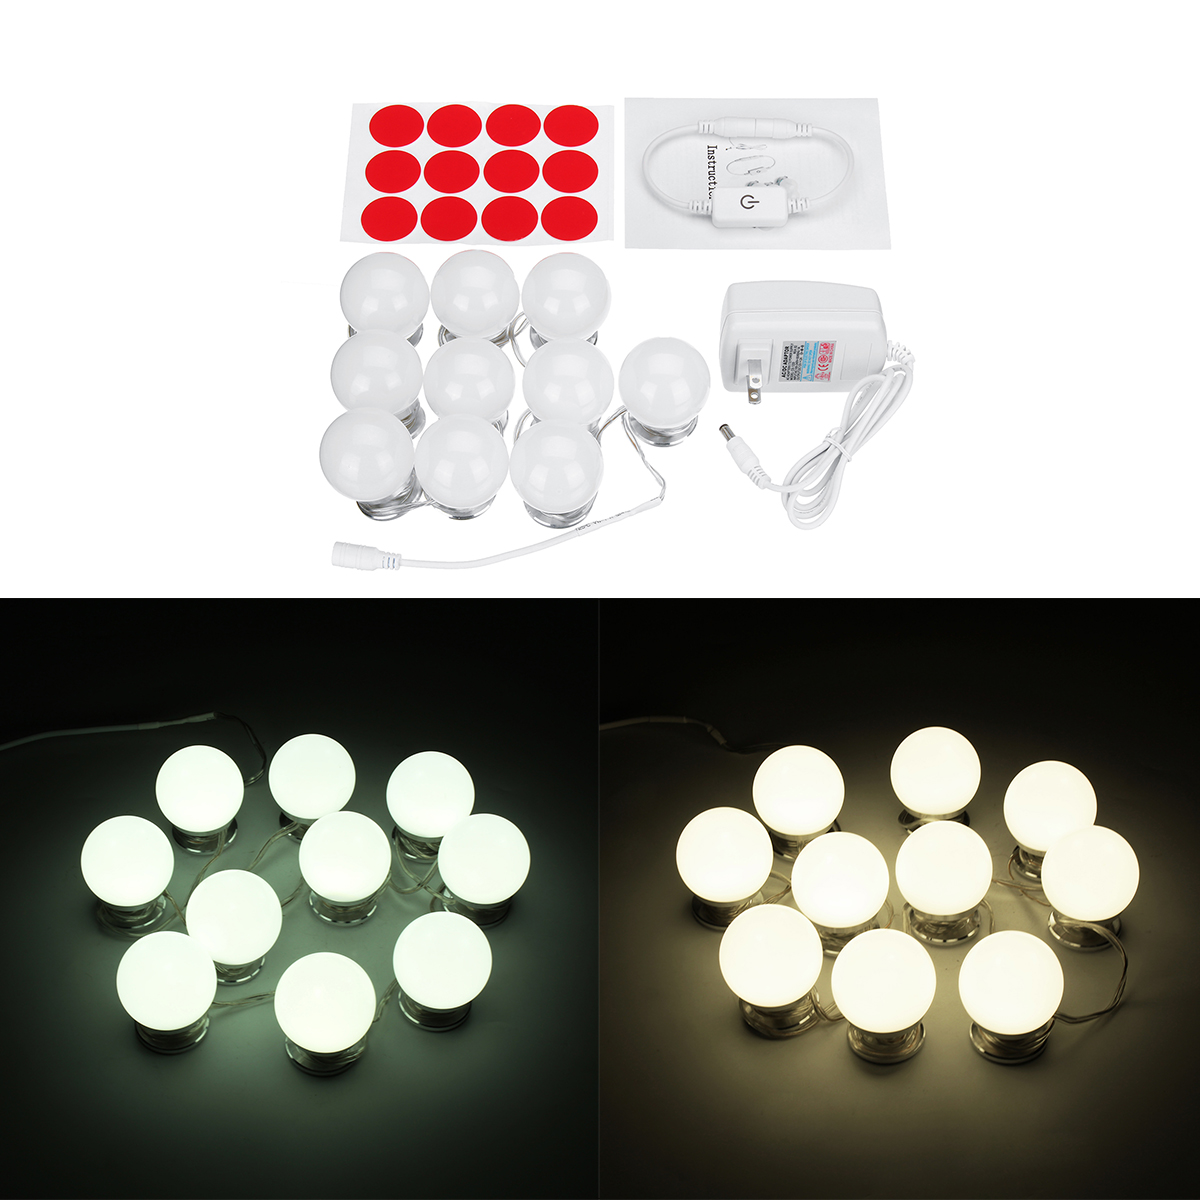 10PCS US Plug Hollywood Style LED Vanity Mirror Makeup Dressing Table Light Kit + Dimmer Controller (Eachine1) Mobile For sale ad